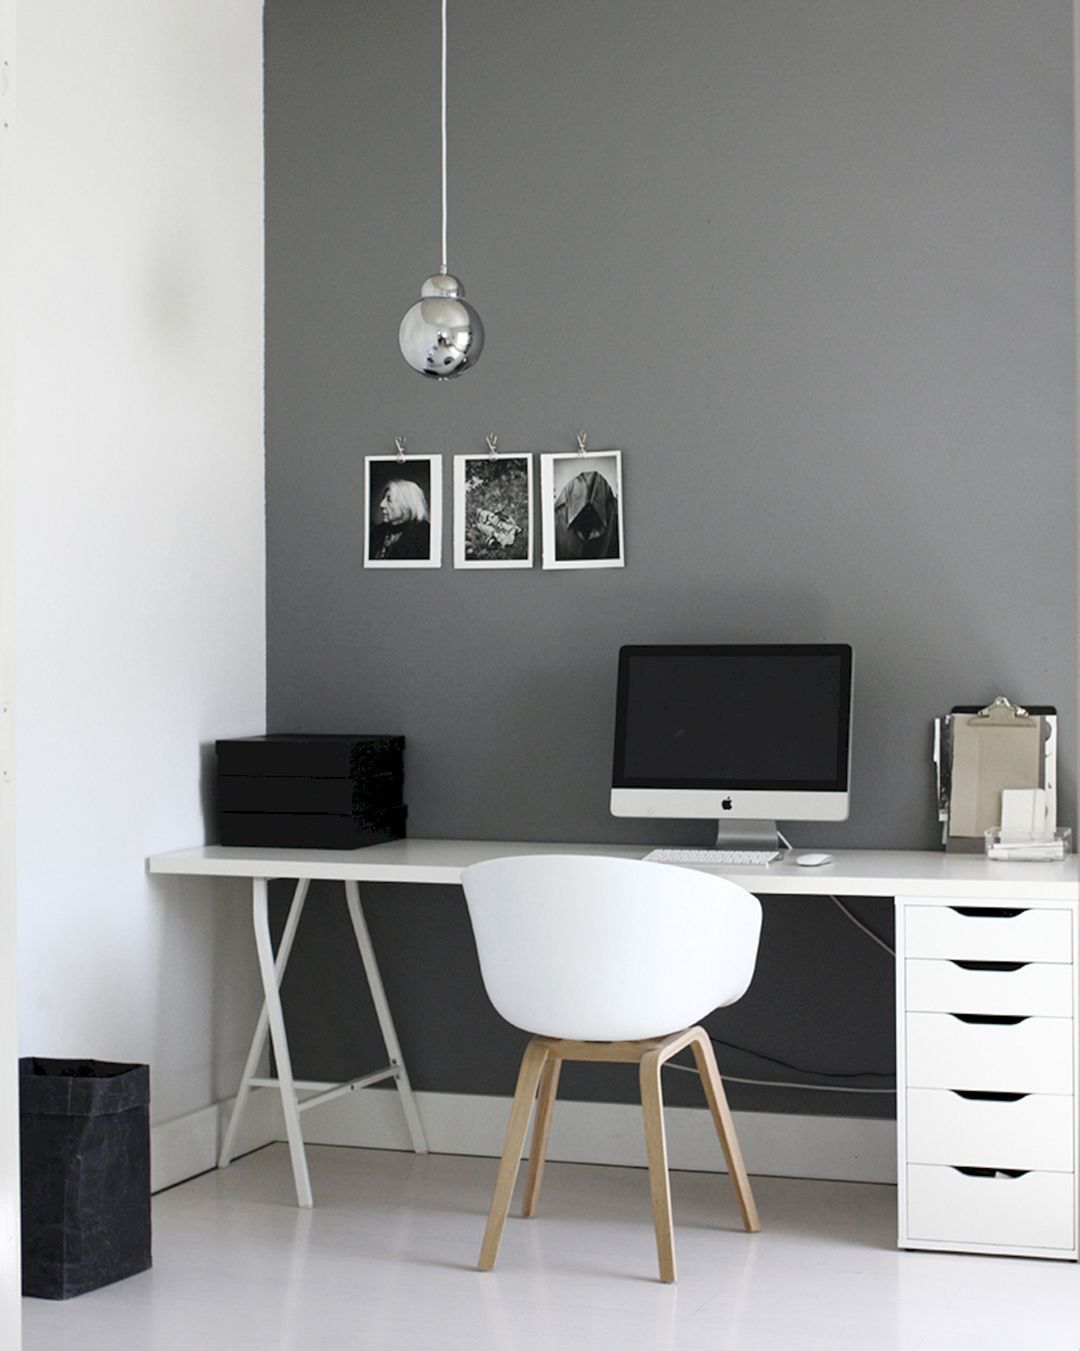 23 Awesome Minimalist Black White Home Office Decorating Ideas Page 13 Of 25 Home Office Design Minimalist Home Minimalist Decor